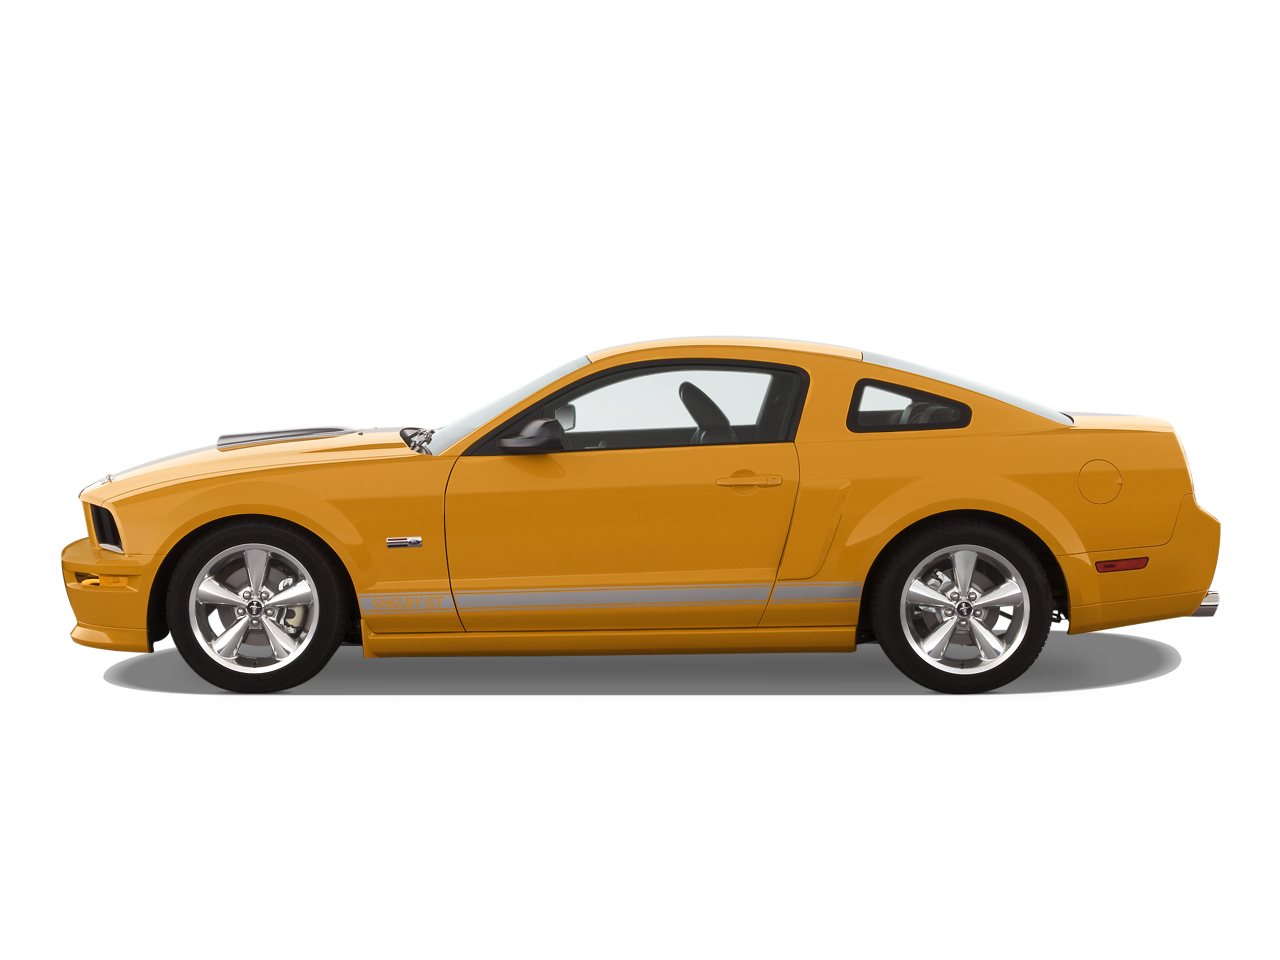 Ford Mustang Png Image Ford Mustang Mustang Ford